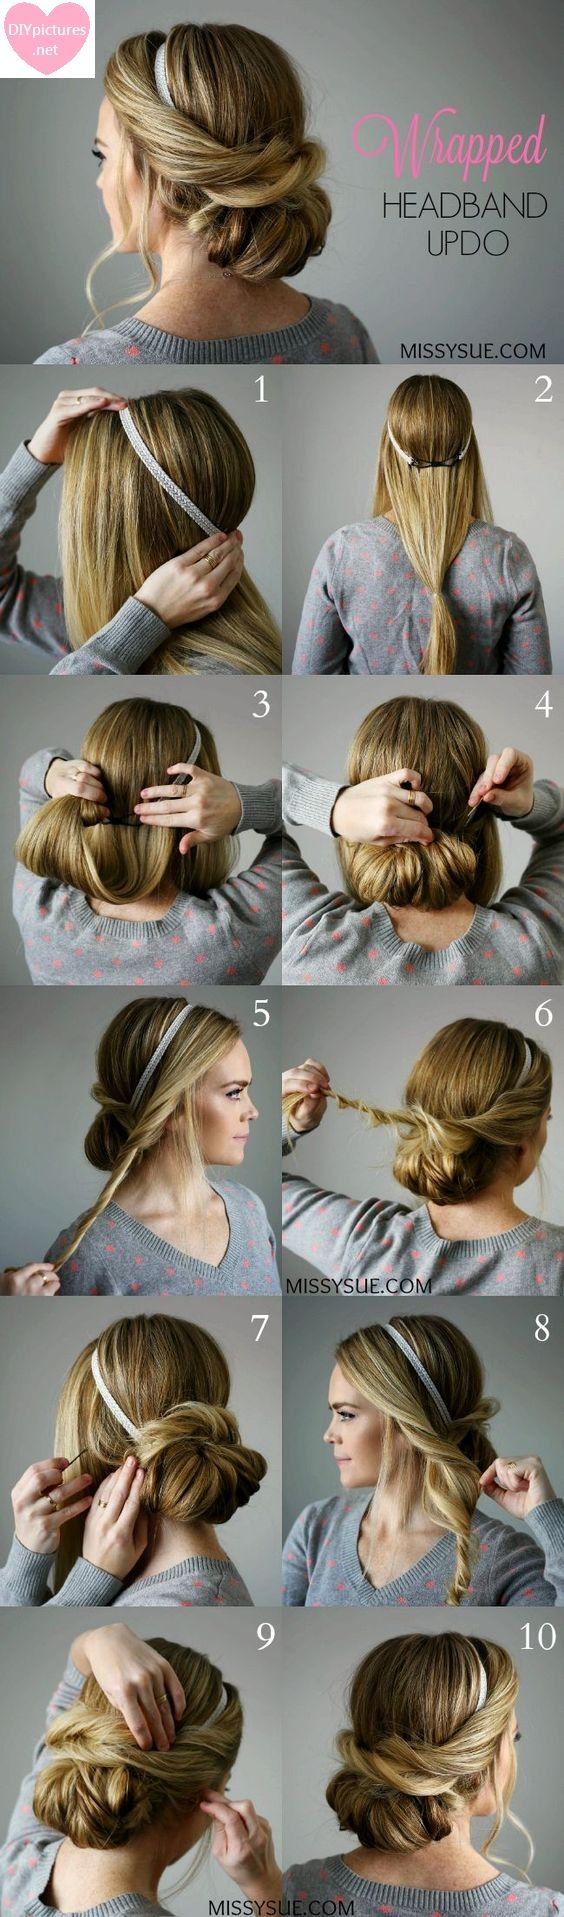 Wrapped Headband Updo Our weekends are times to rest and unwind and the exact opposite thing we need to do is go through ages objecting with our hair. Sadly, here and there you have social commitme…